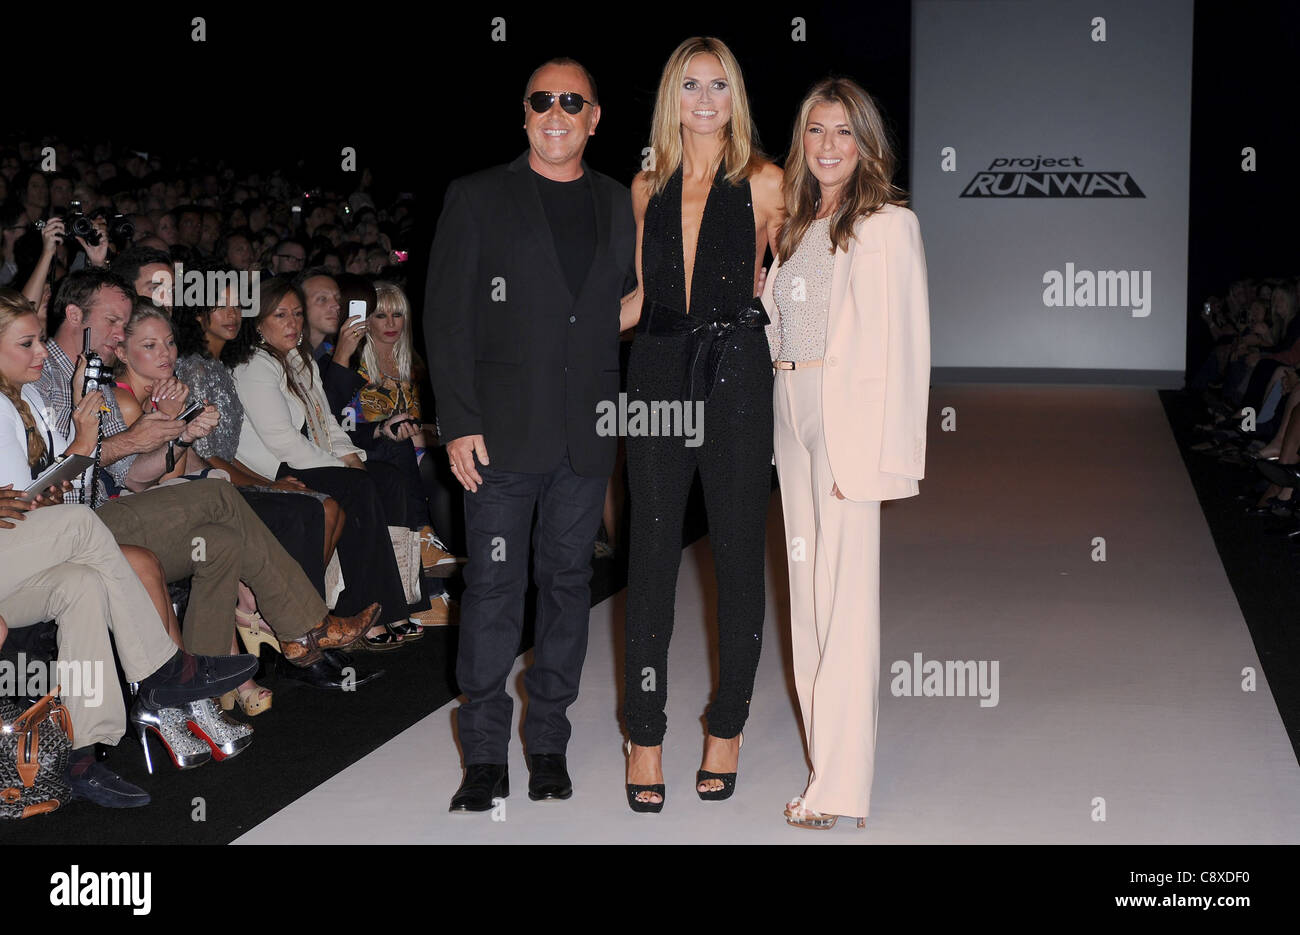 Nina Garcia Heidi Klum Michael Kors In Attendance Project Runway Stock Photo Alamy